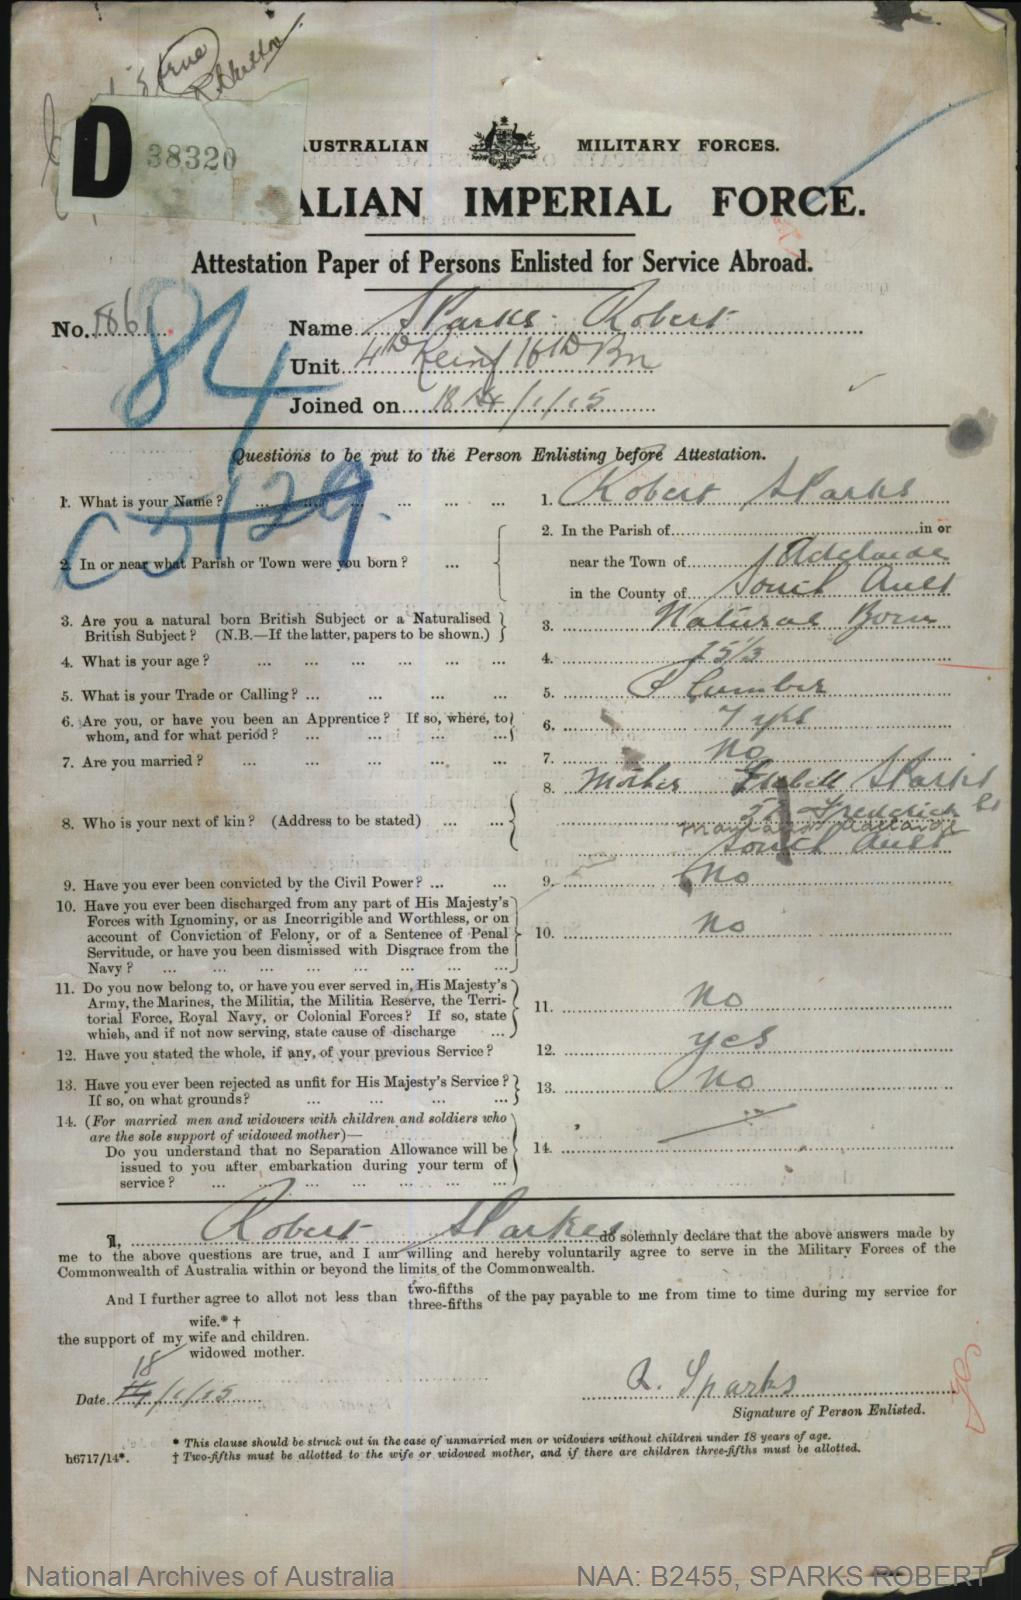 SPARKS Robert : Service Number - 1861 : Place of Birth - Adelaide SA : Place of Enlistment - Perth WA : Next of Kin - (Mother) SPARKS Isebell